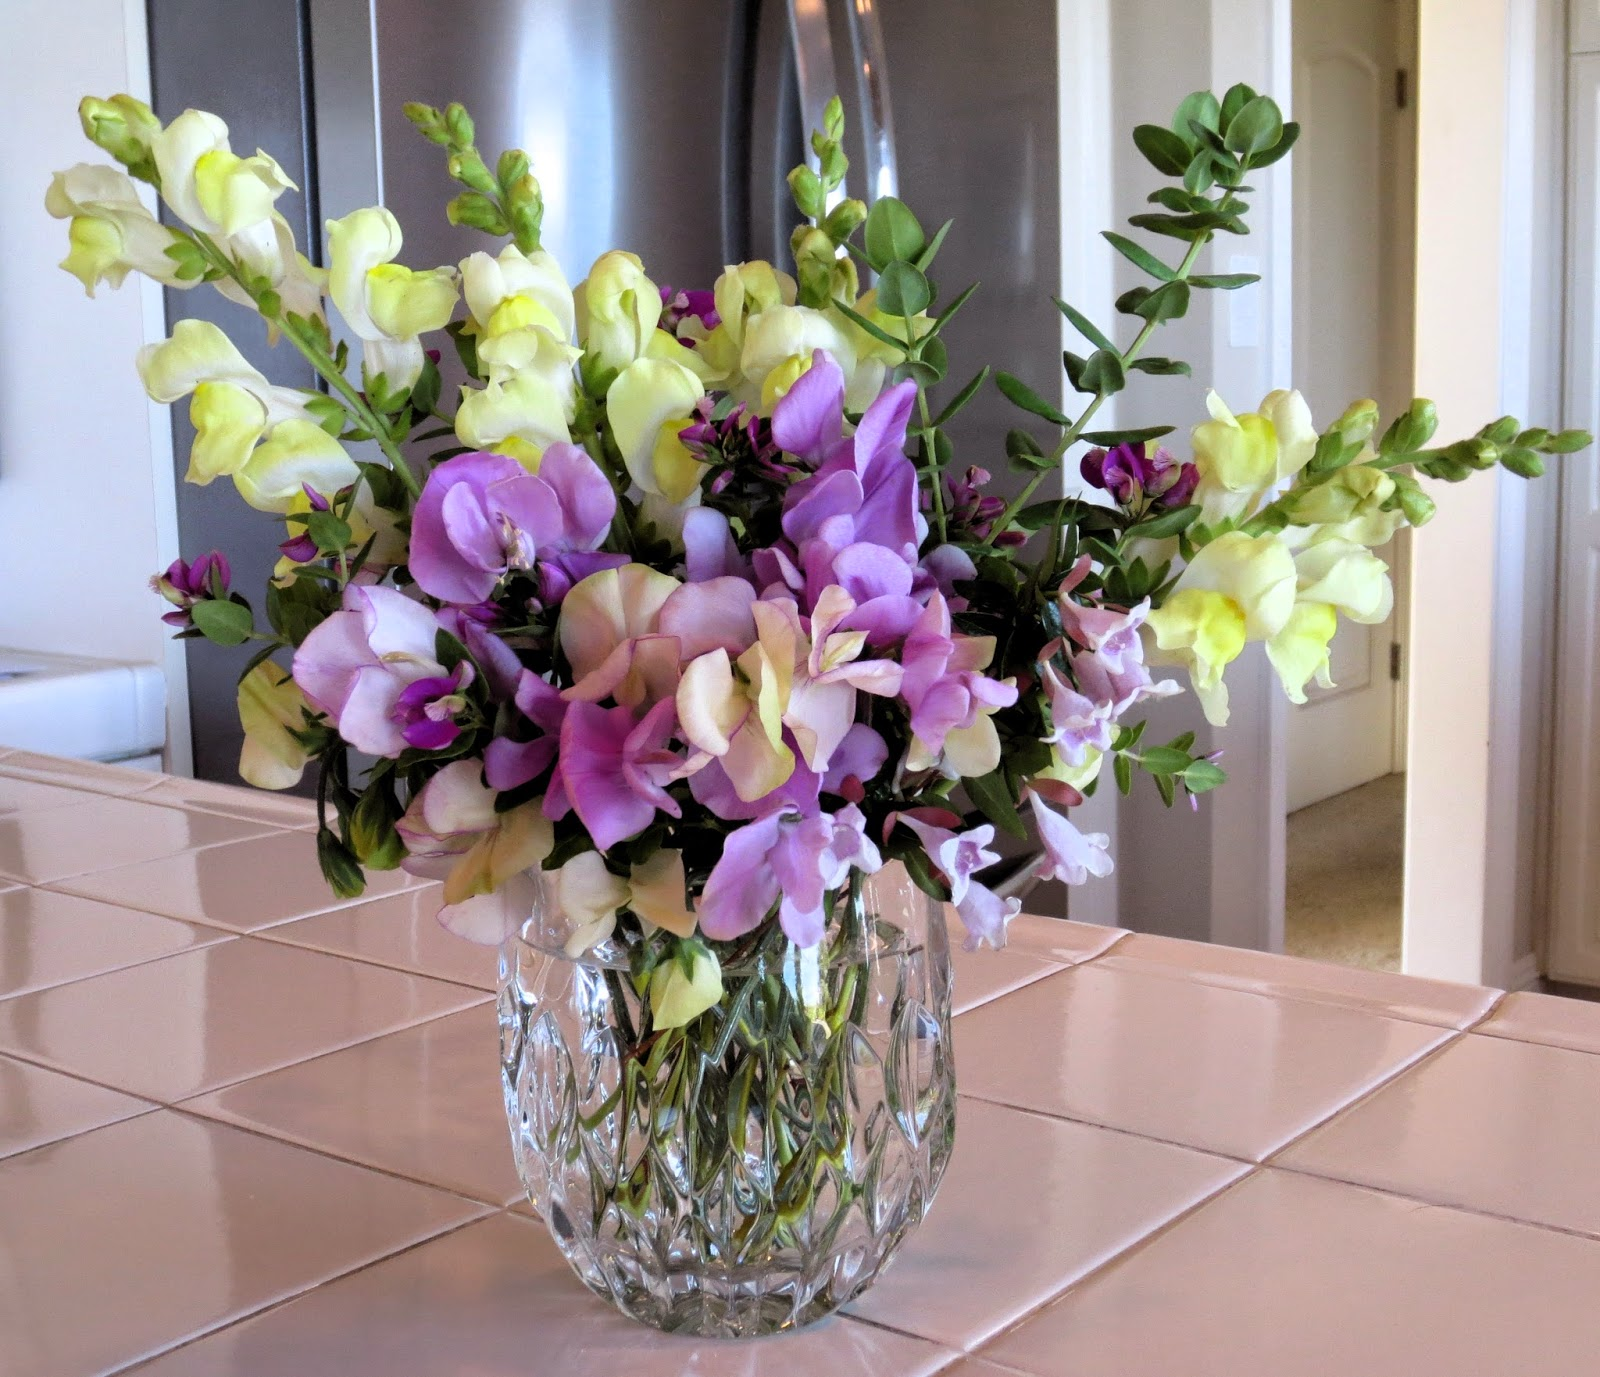 Late to the garden party in a vase on monday sweet peas reviewsmspy